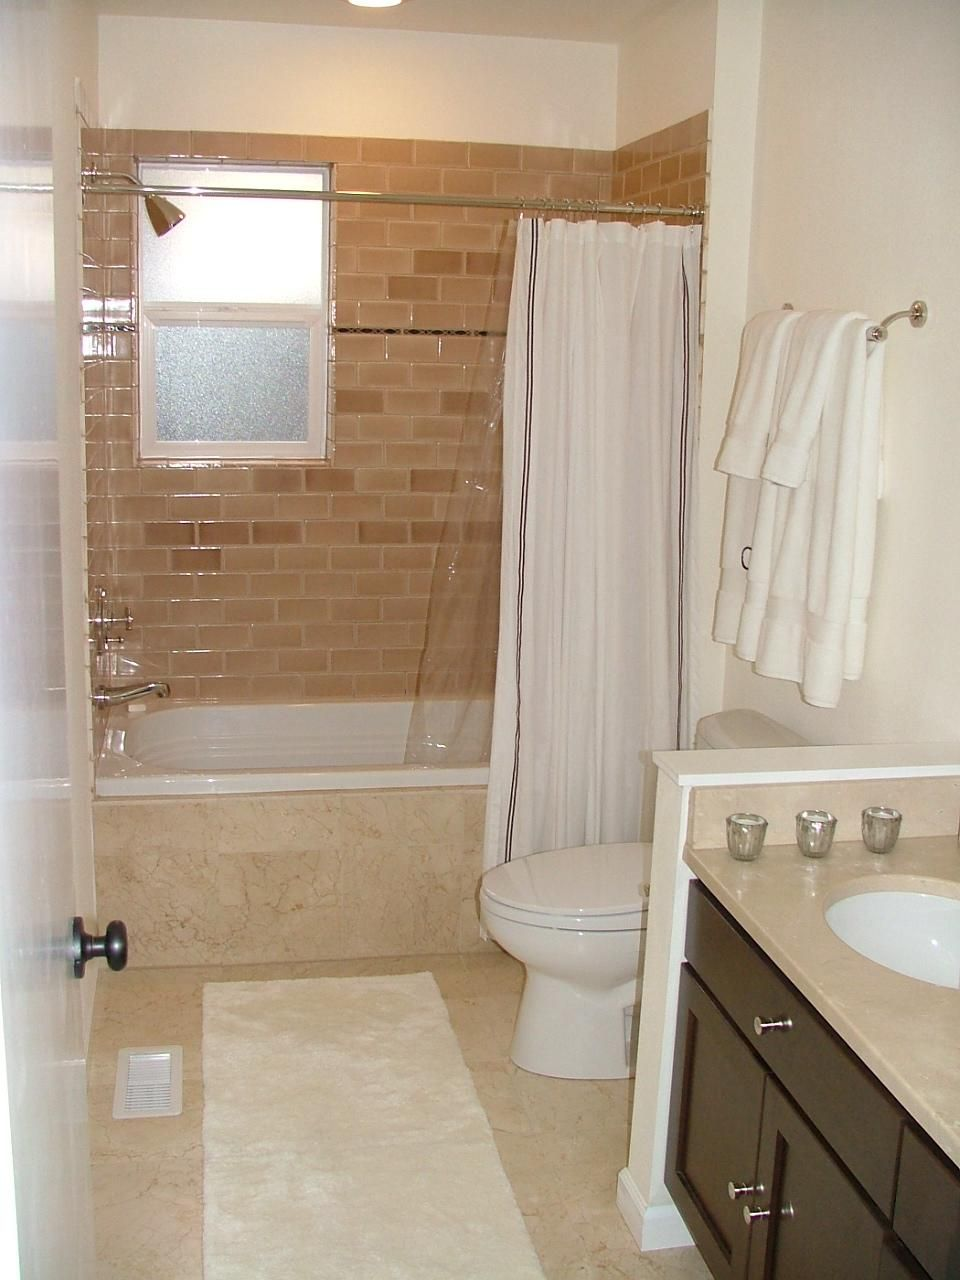 small bathrooms are less expensive to remodel, compared with a